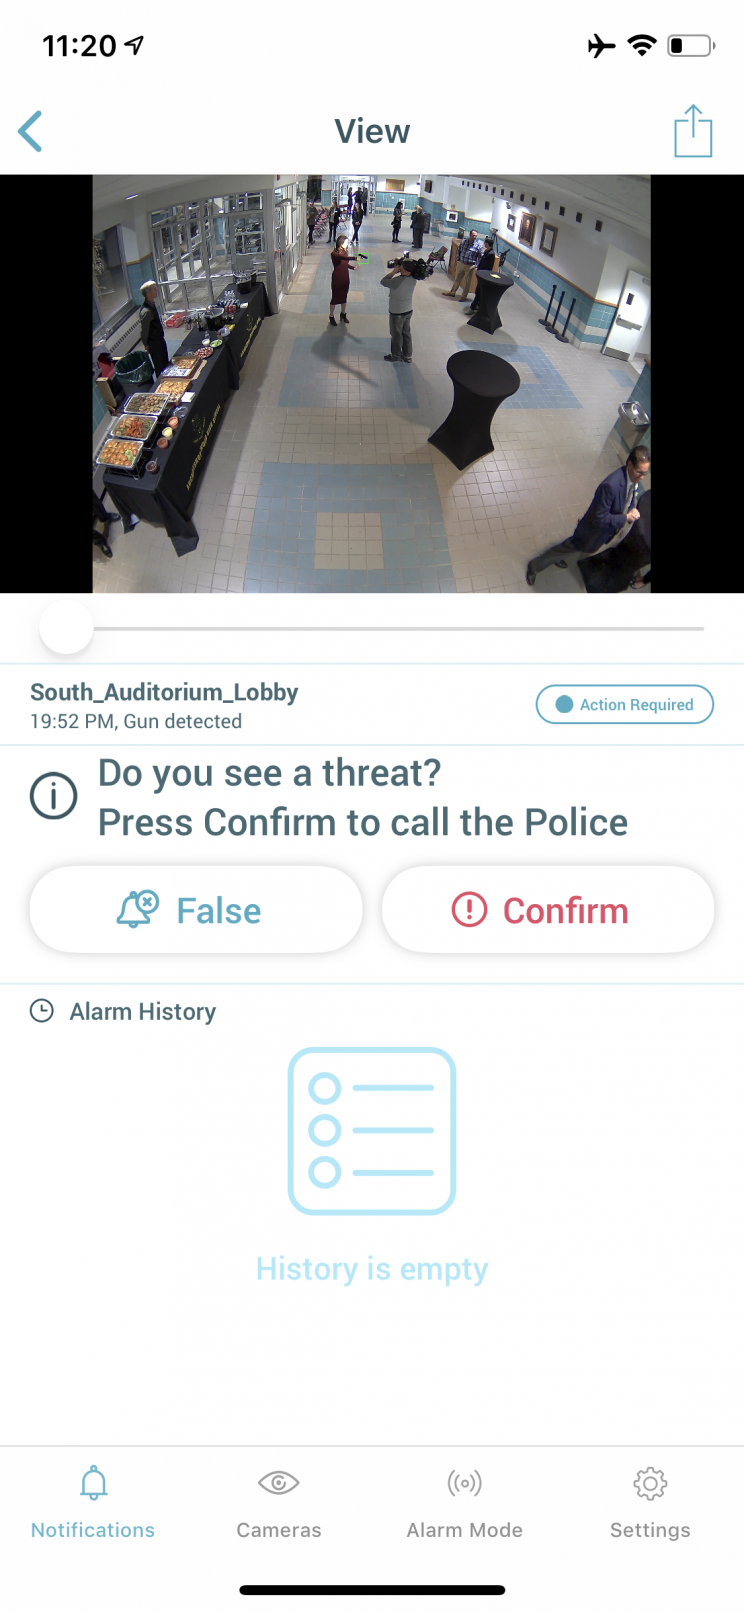 Athena security AI surveillance detects guns, prevents mass shootings